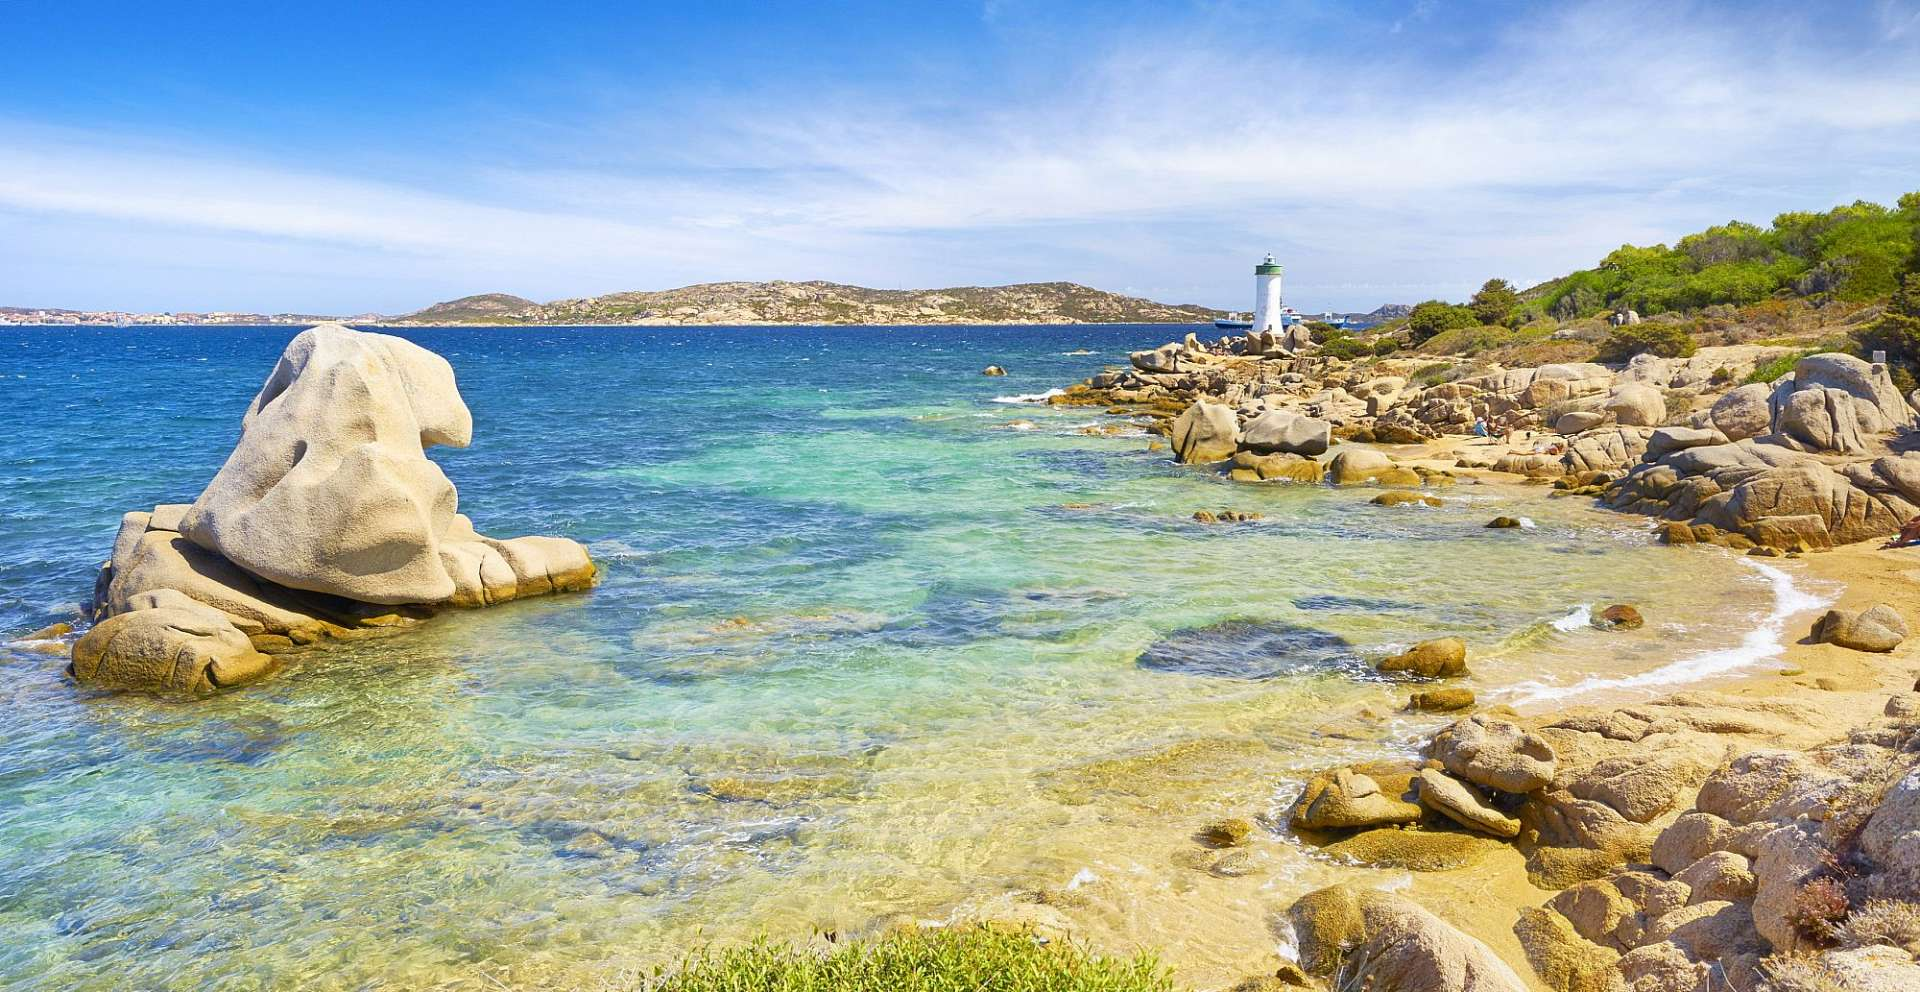 Islands, beaches, crystalline waters: Costa Smeralda